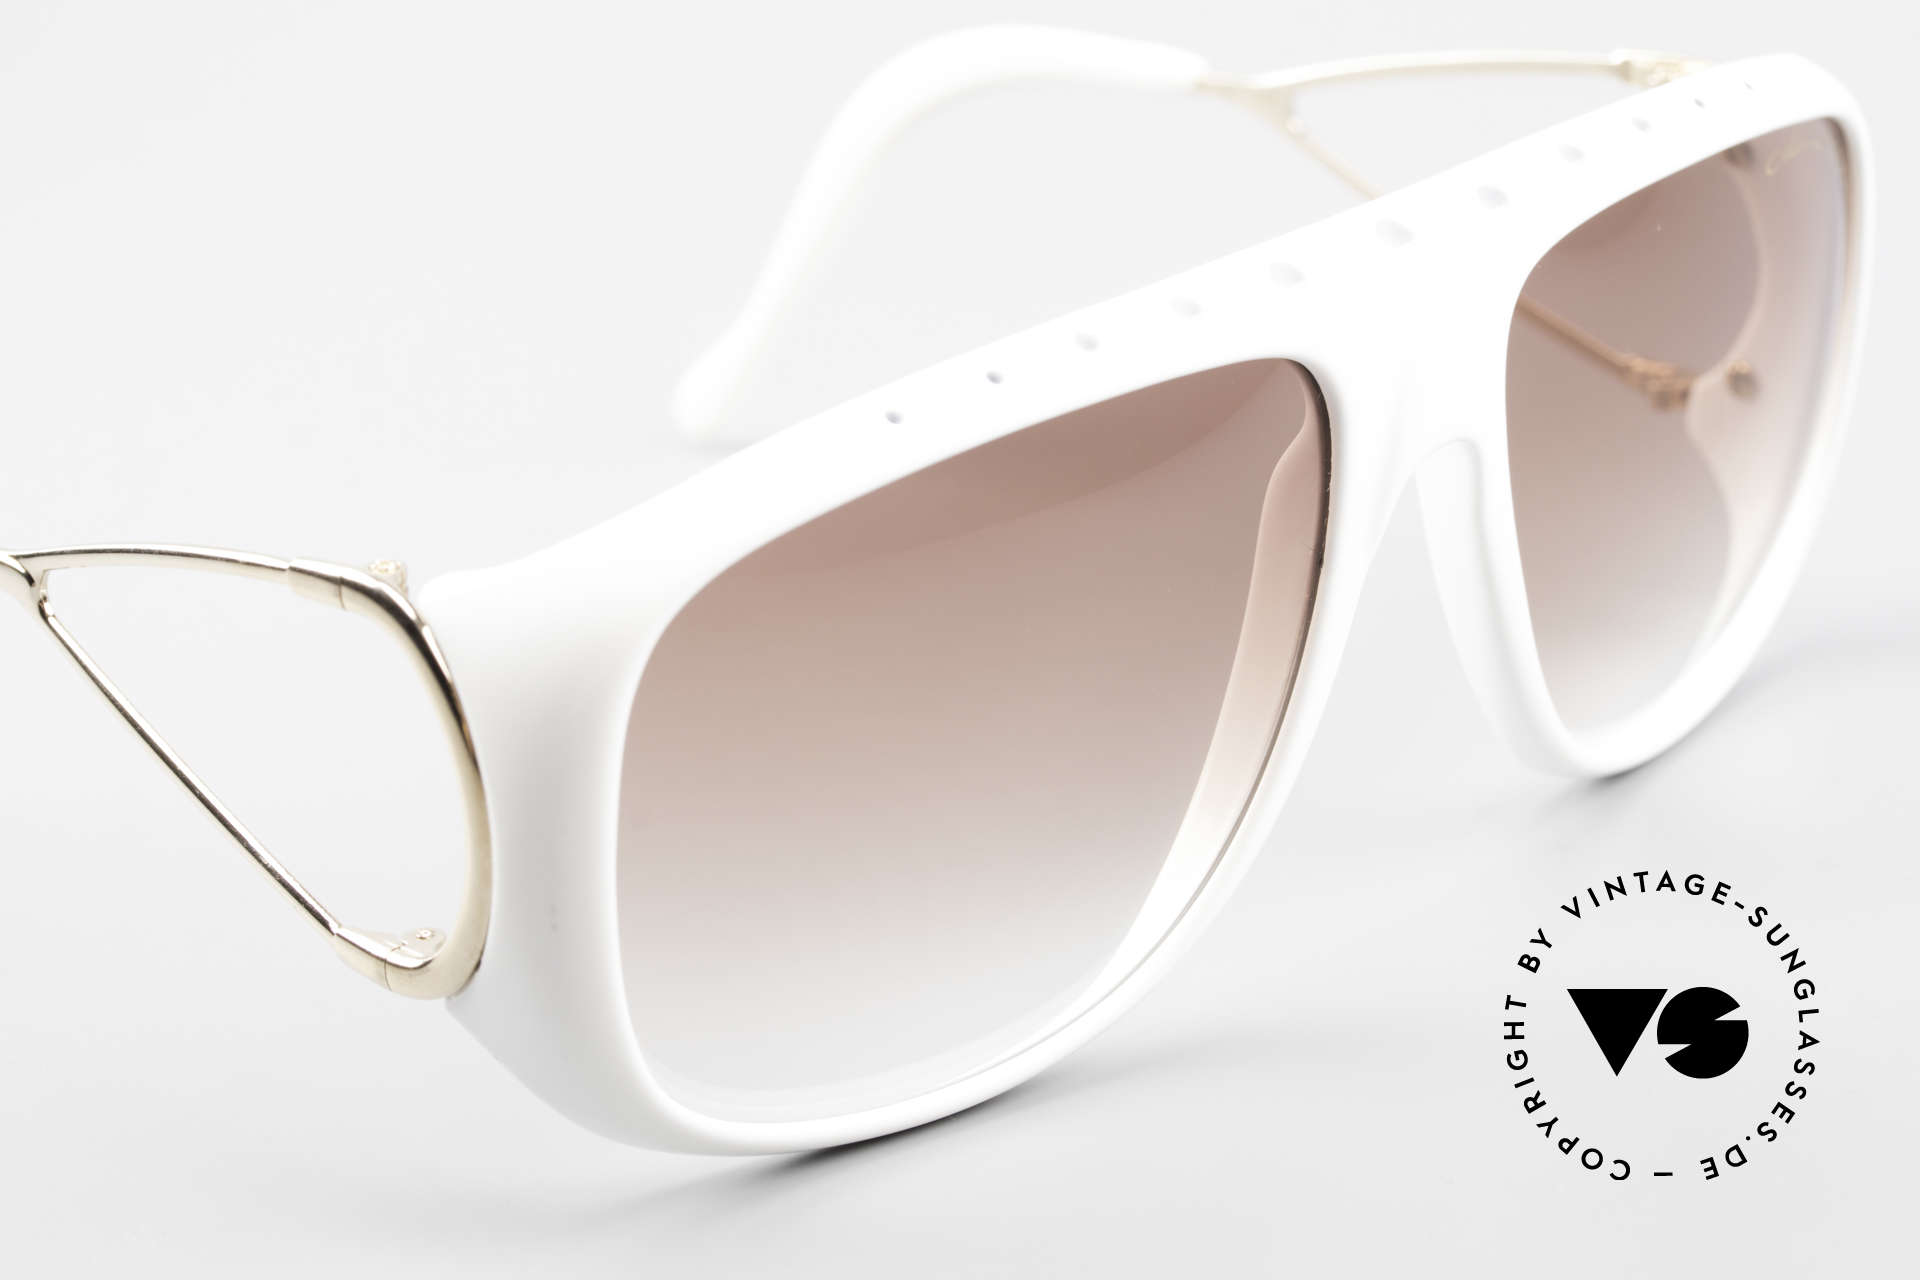 Colani 10-621 80's Shades European Edition, it's the European version without extra nose pads, Made for Men